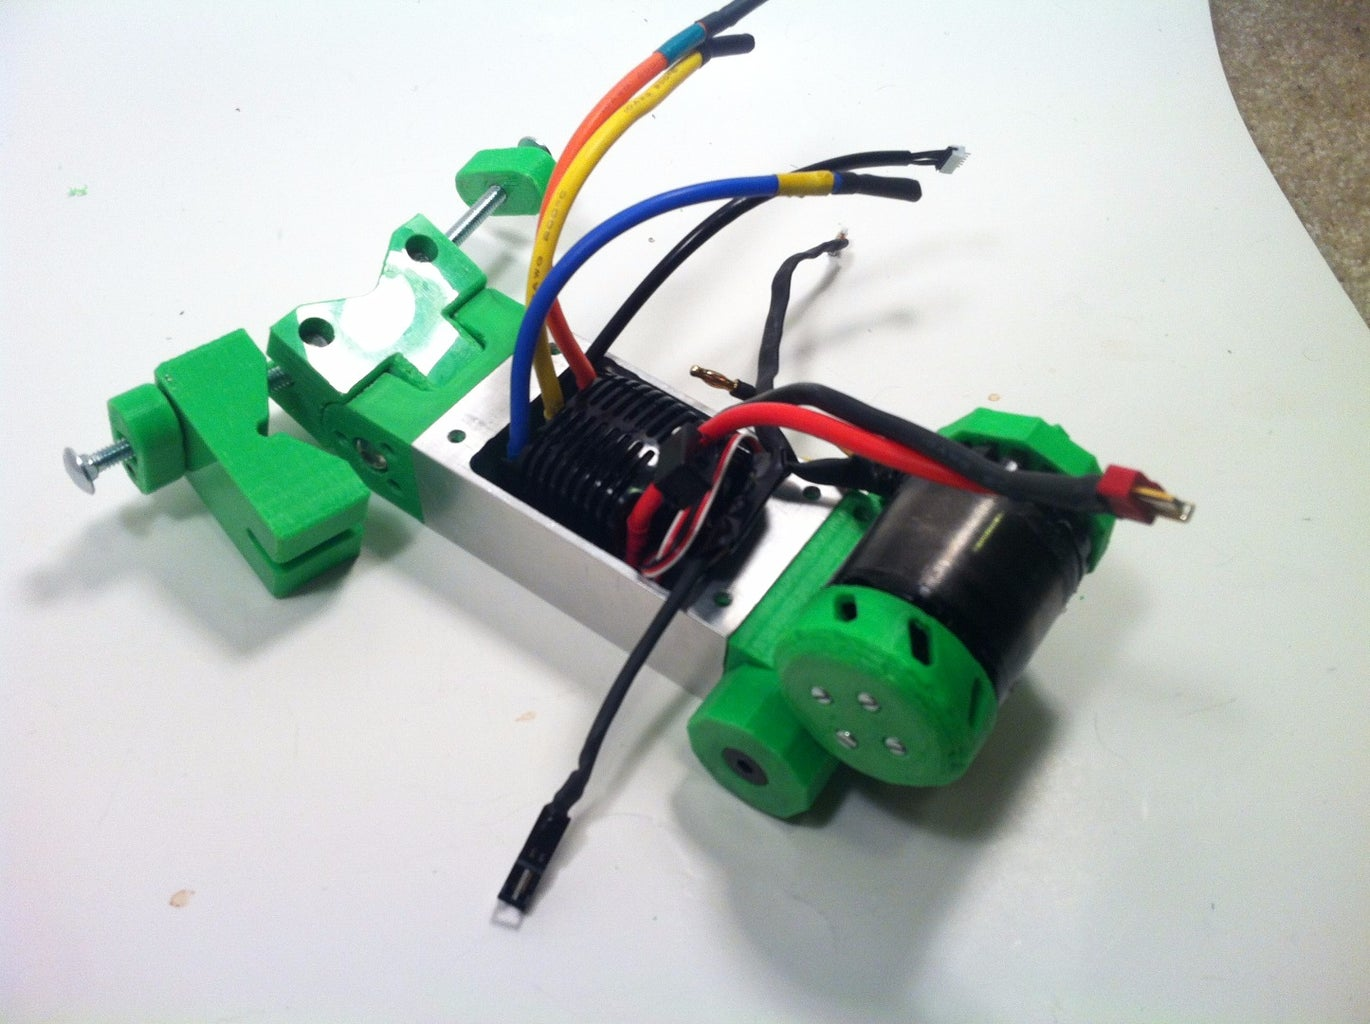 ASSEMBLY: MOUNT TO FRAME & WIRE IT UP